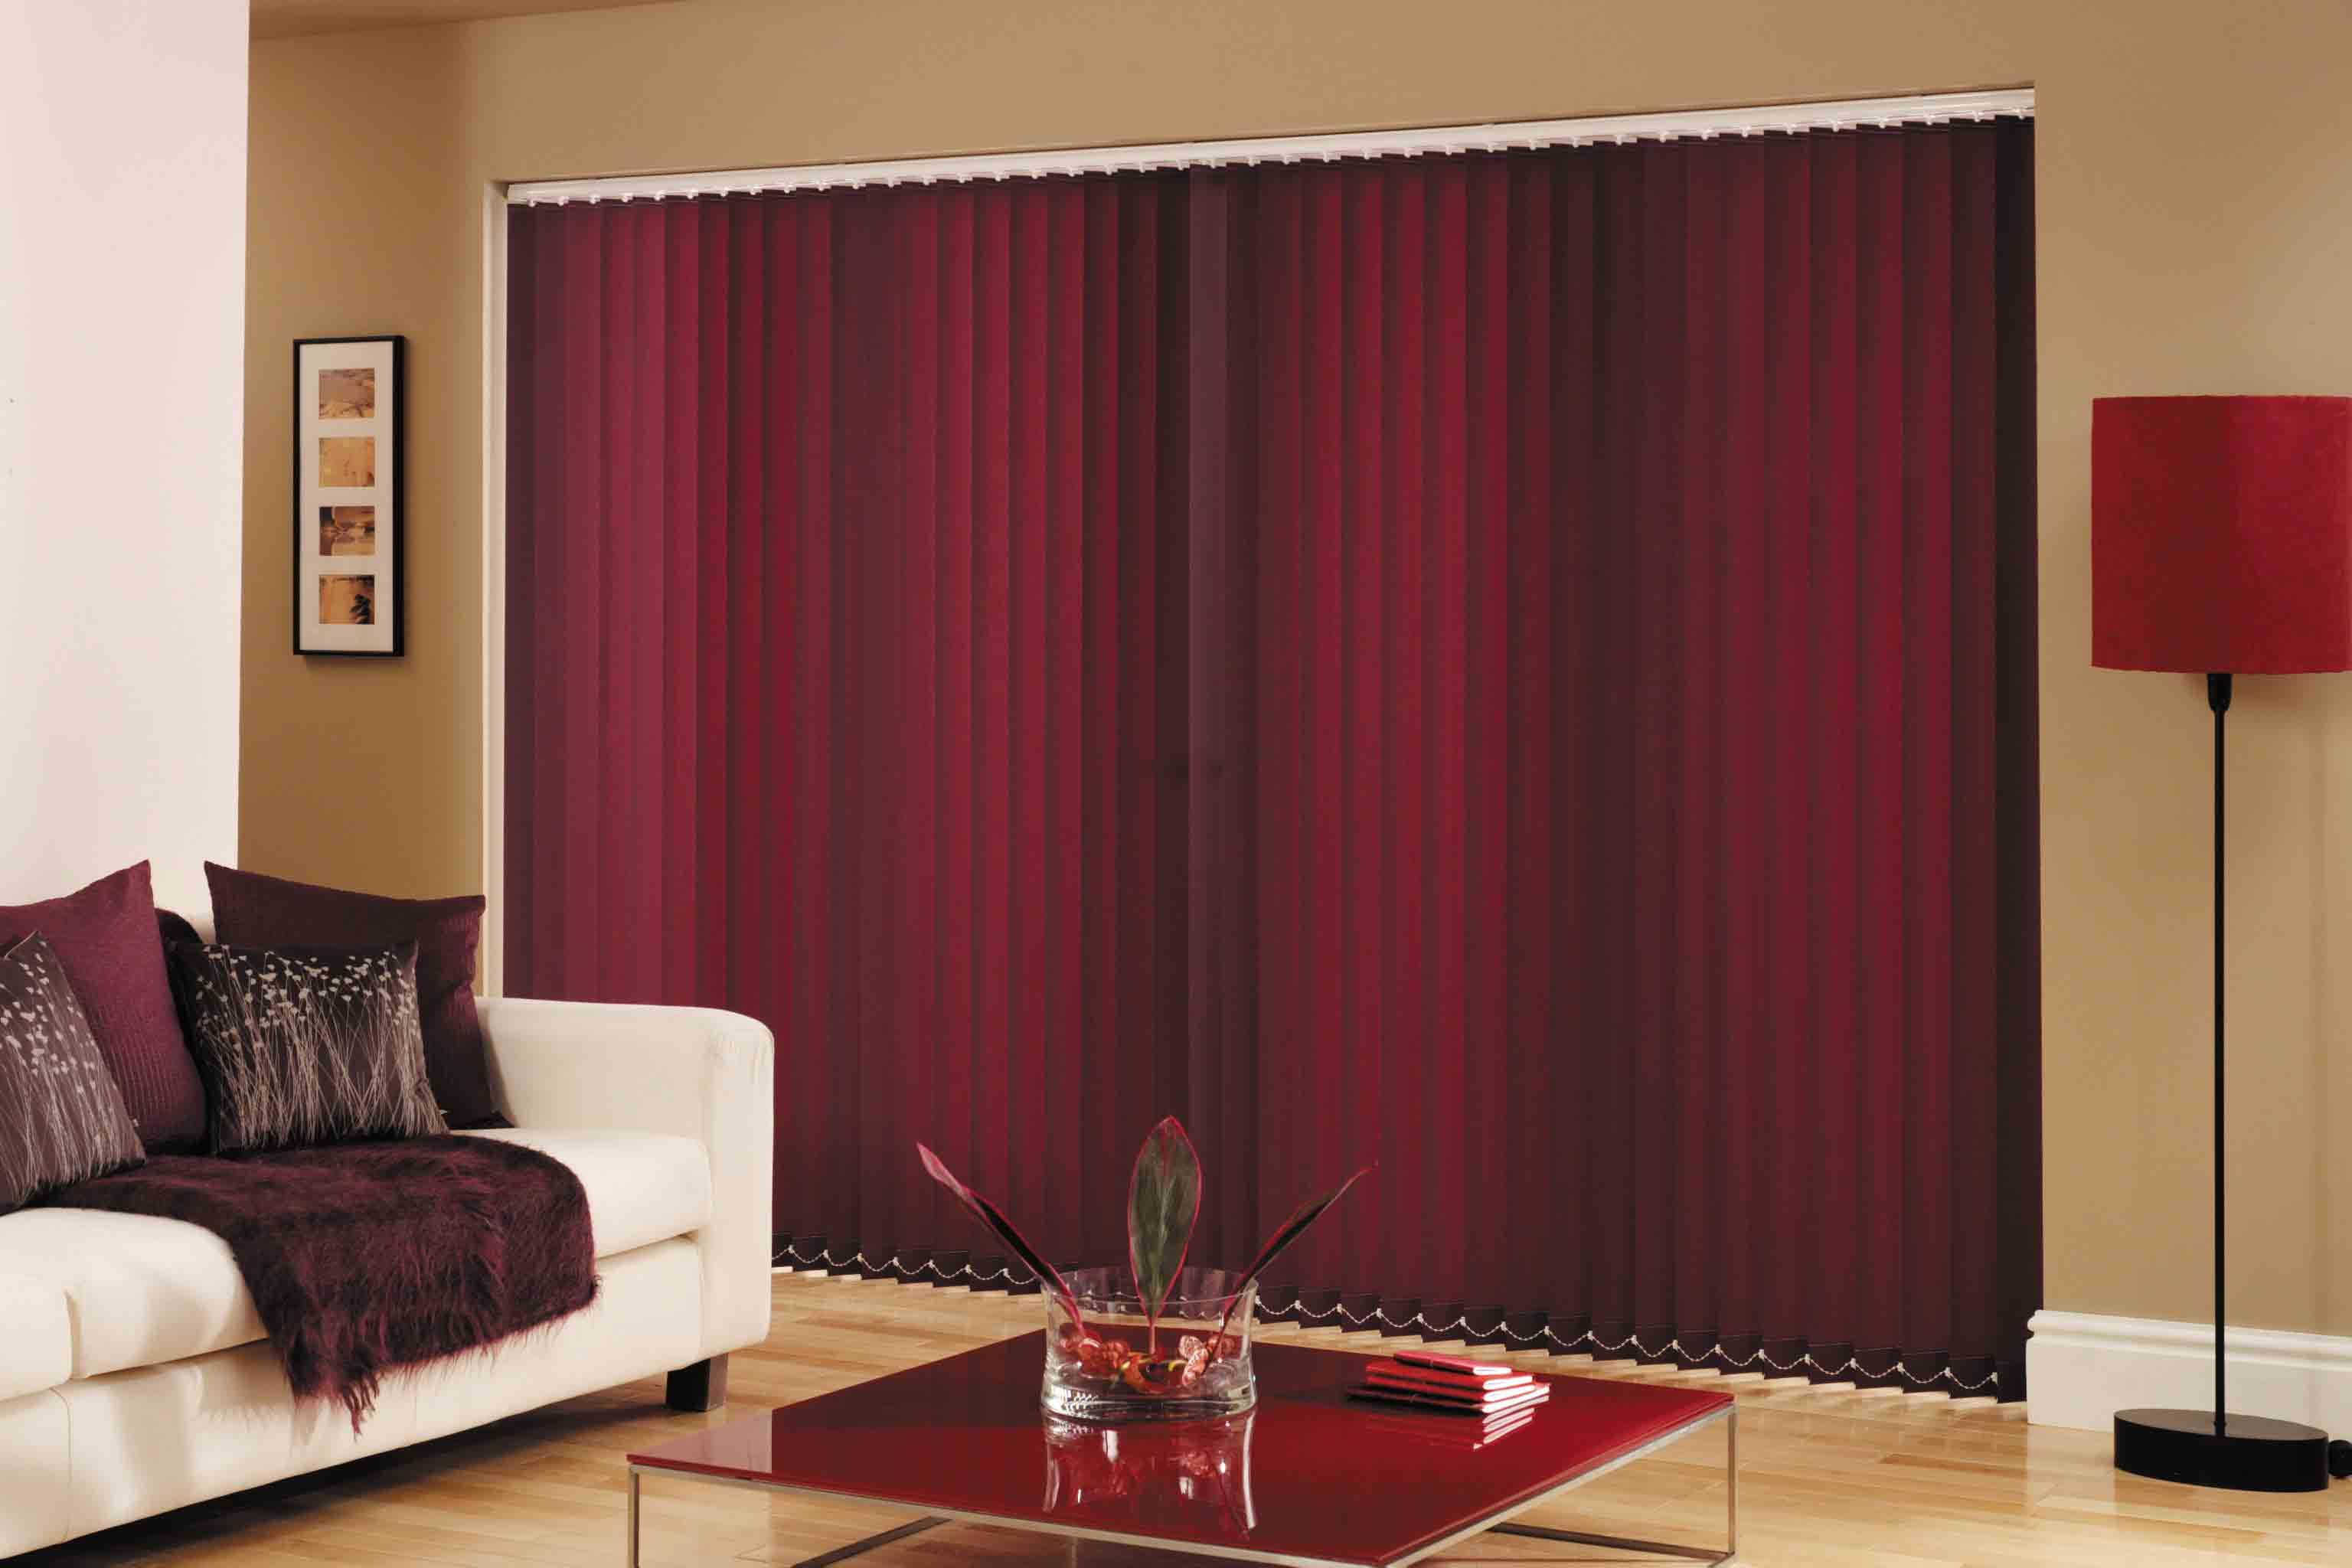 Classy Vertical Blinds And Curtains Pictures Idea Decor And Remodel Rh  Pinterest Ca